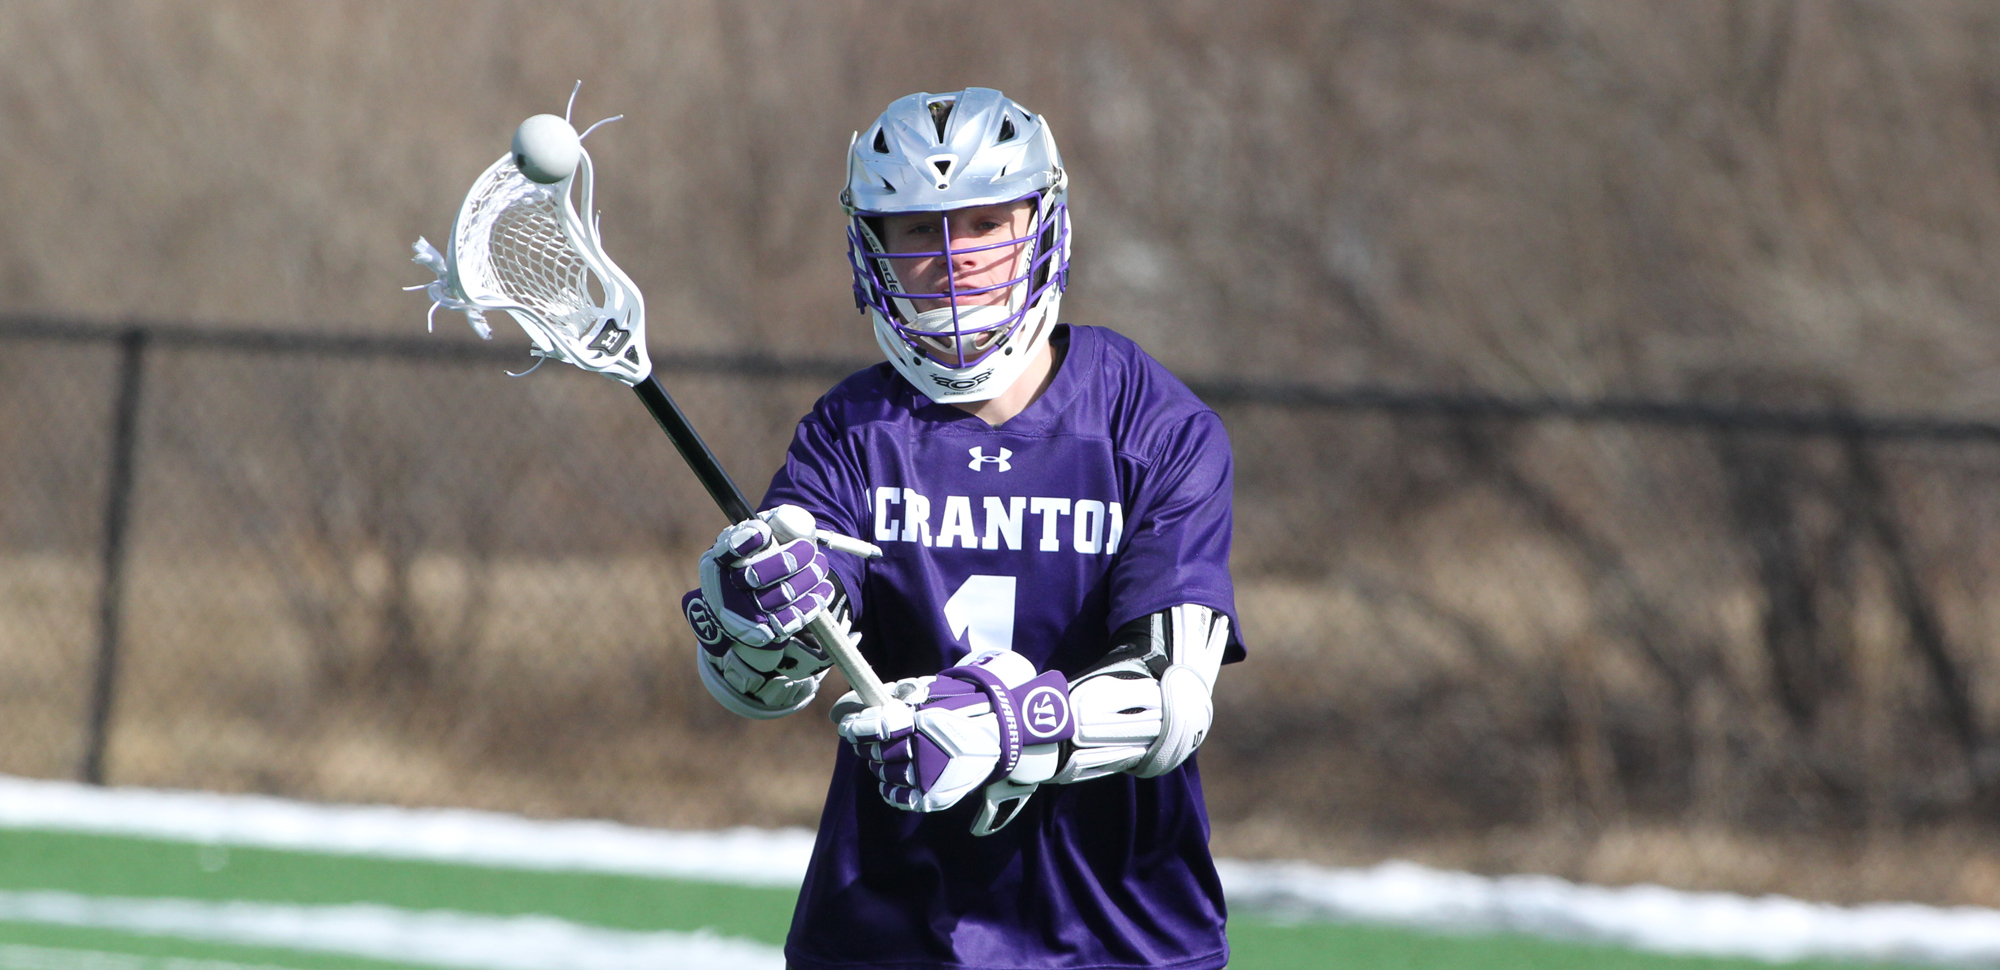 Freshman Cole Lukasiewicz recorded a season-high five points on four goals and one assist in Scranton's win at Misericordia on Tuesday night. © Photo by Timothy R. Dougherty / doubleeaglephotography.com